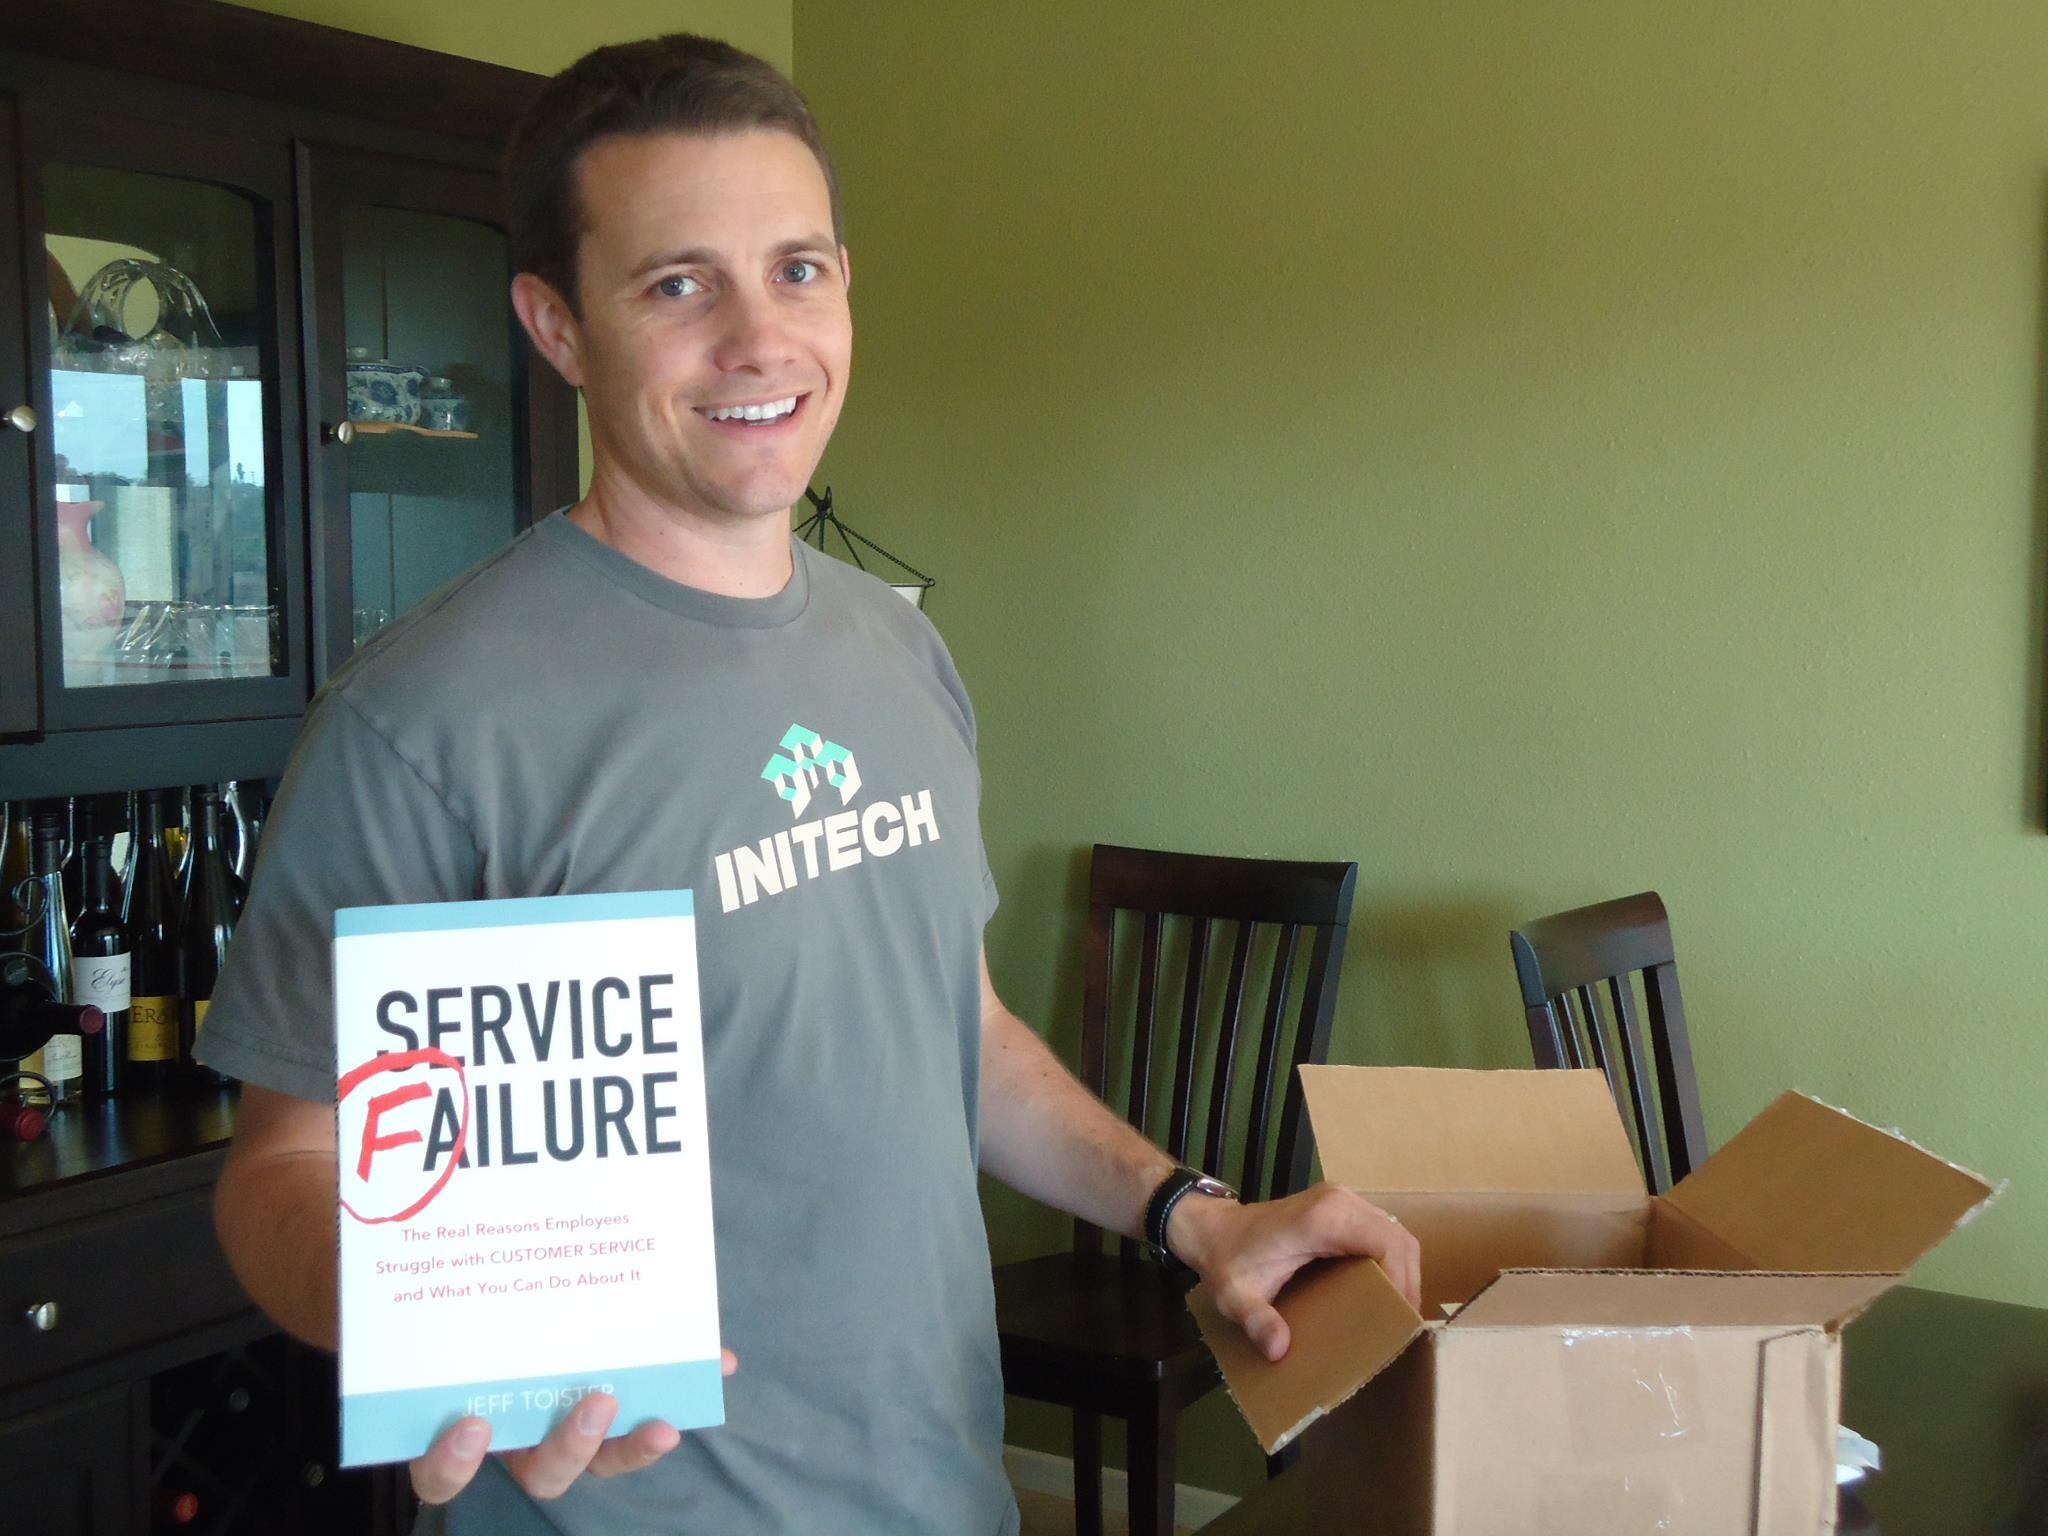 The author, Jeff Toister, holding up his first book,  Service Failure .